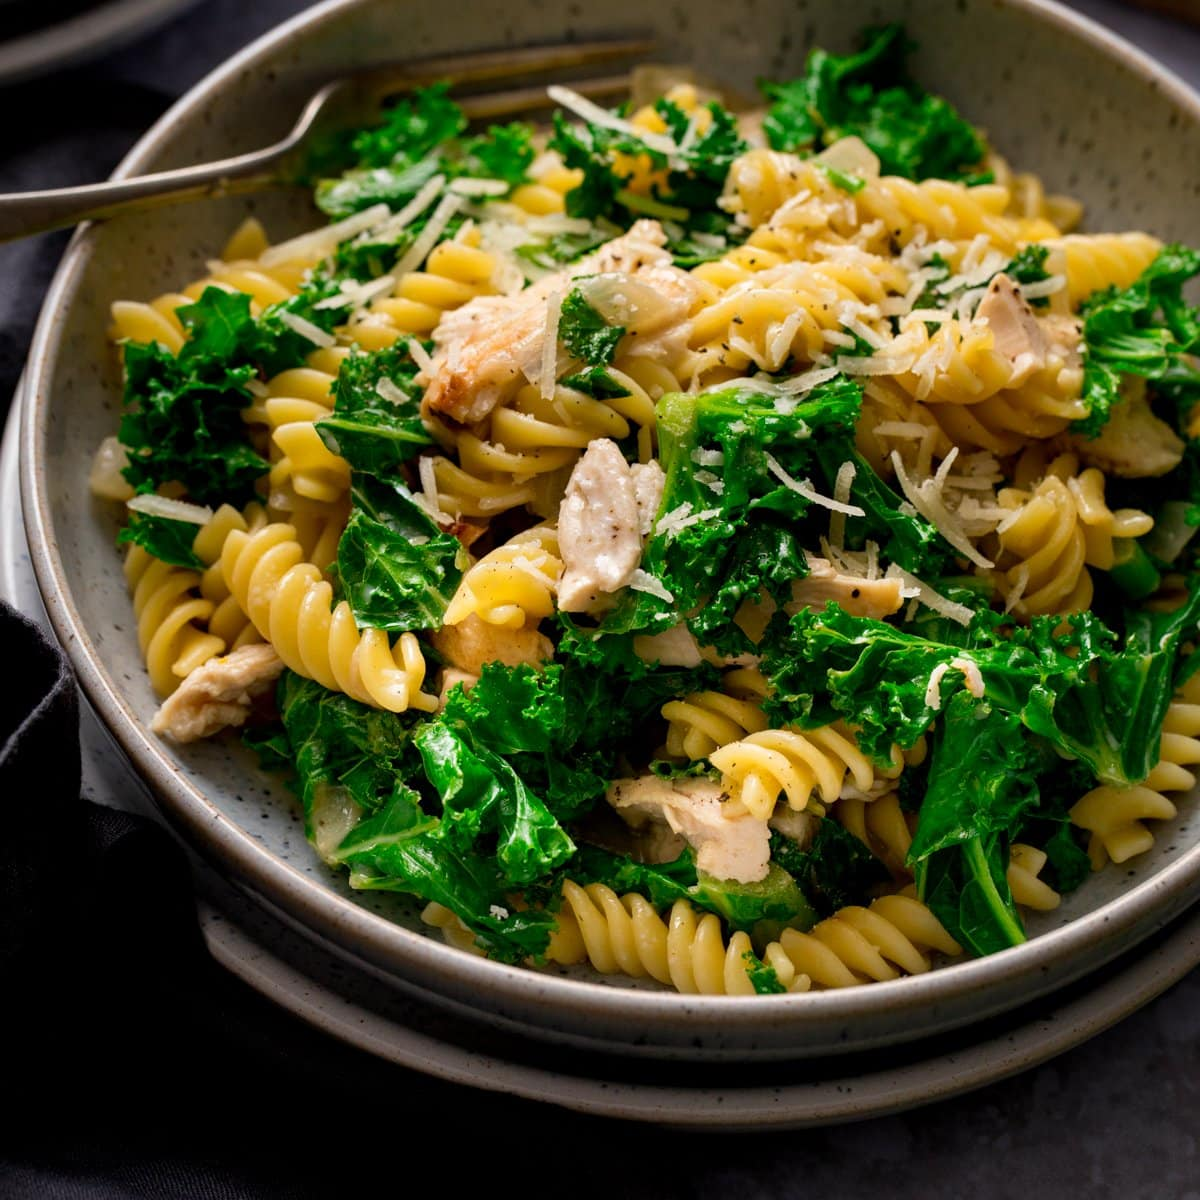 Close up of a bowl of garlic chicken pasta and kale with a fork in the bowl.